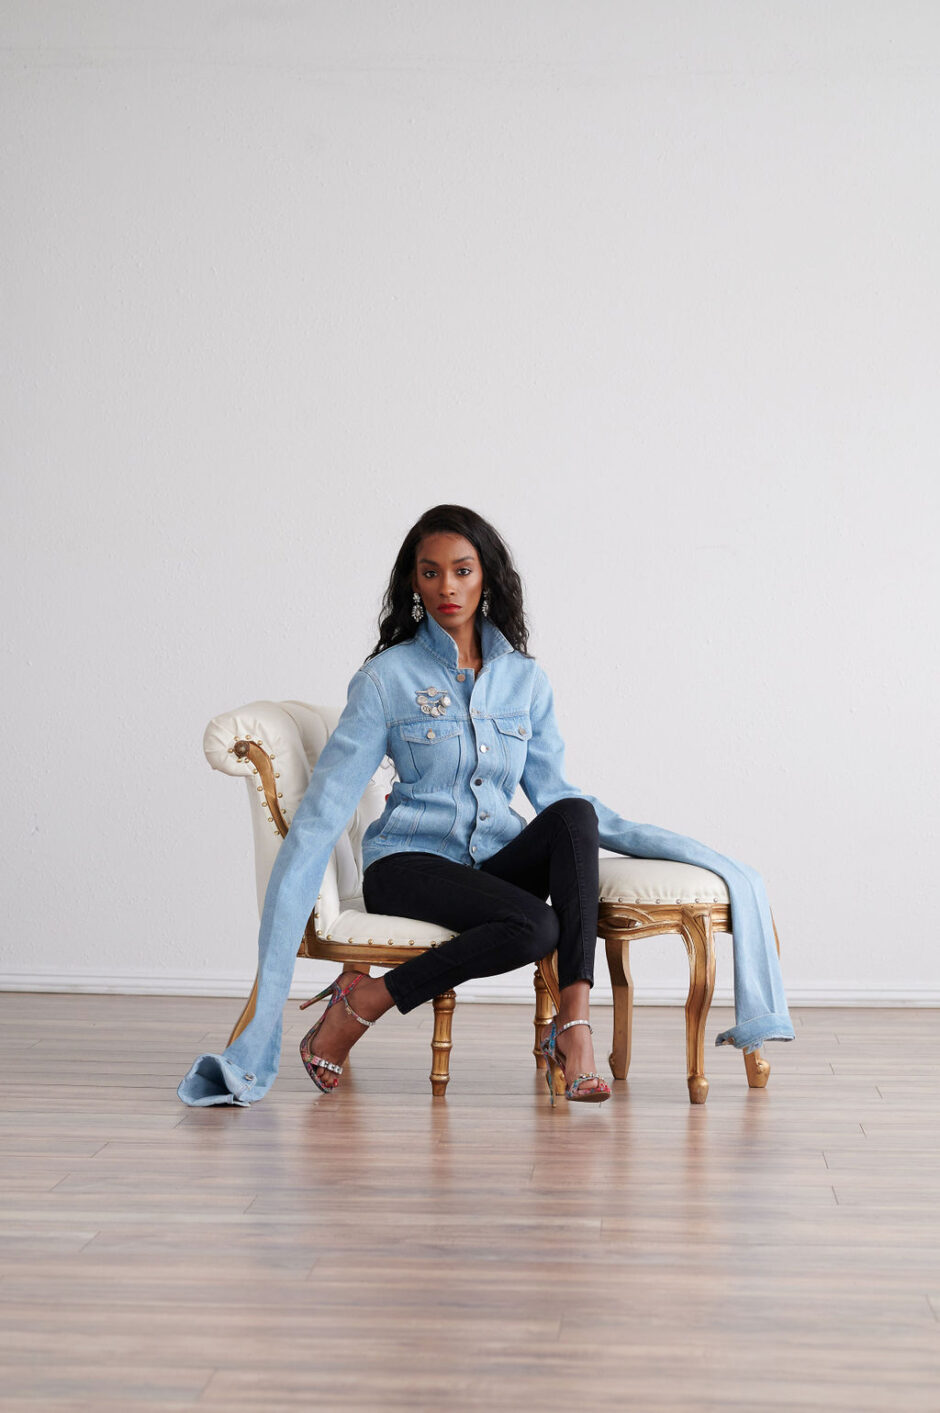 Annju'lia Smalls In Y/Project-styled by melissa-lcm-sheldon botler photography-denim jacket-elongated sleeves-high fashion-editorial